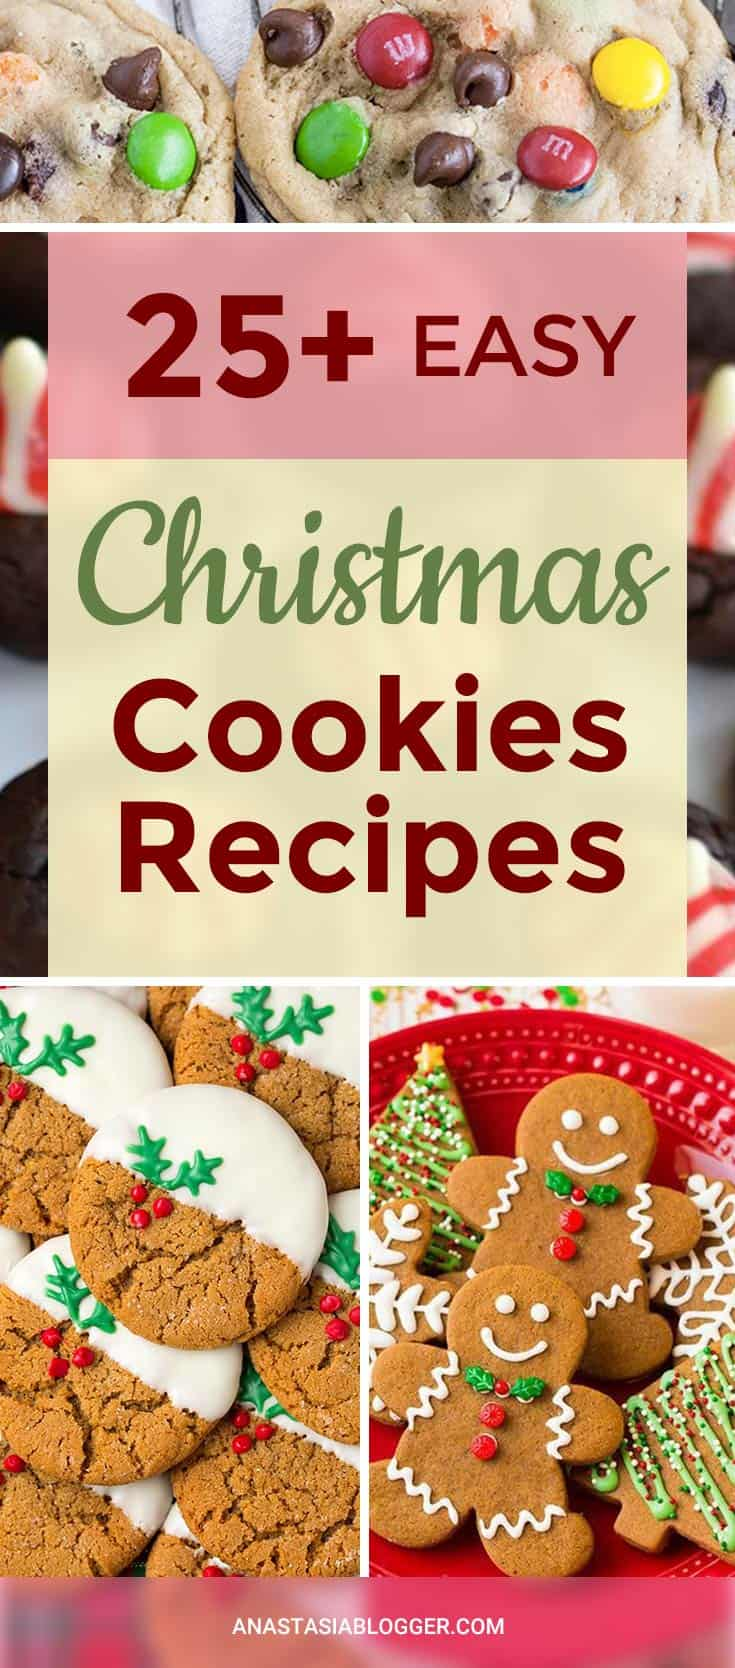 25 easy christmas cookies recipes to try this year try best christmas cookie ideas - Easy Christmas Baking Ideas